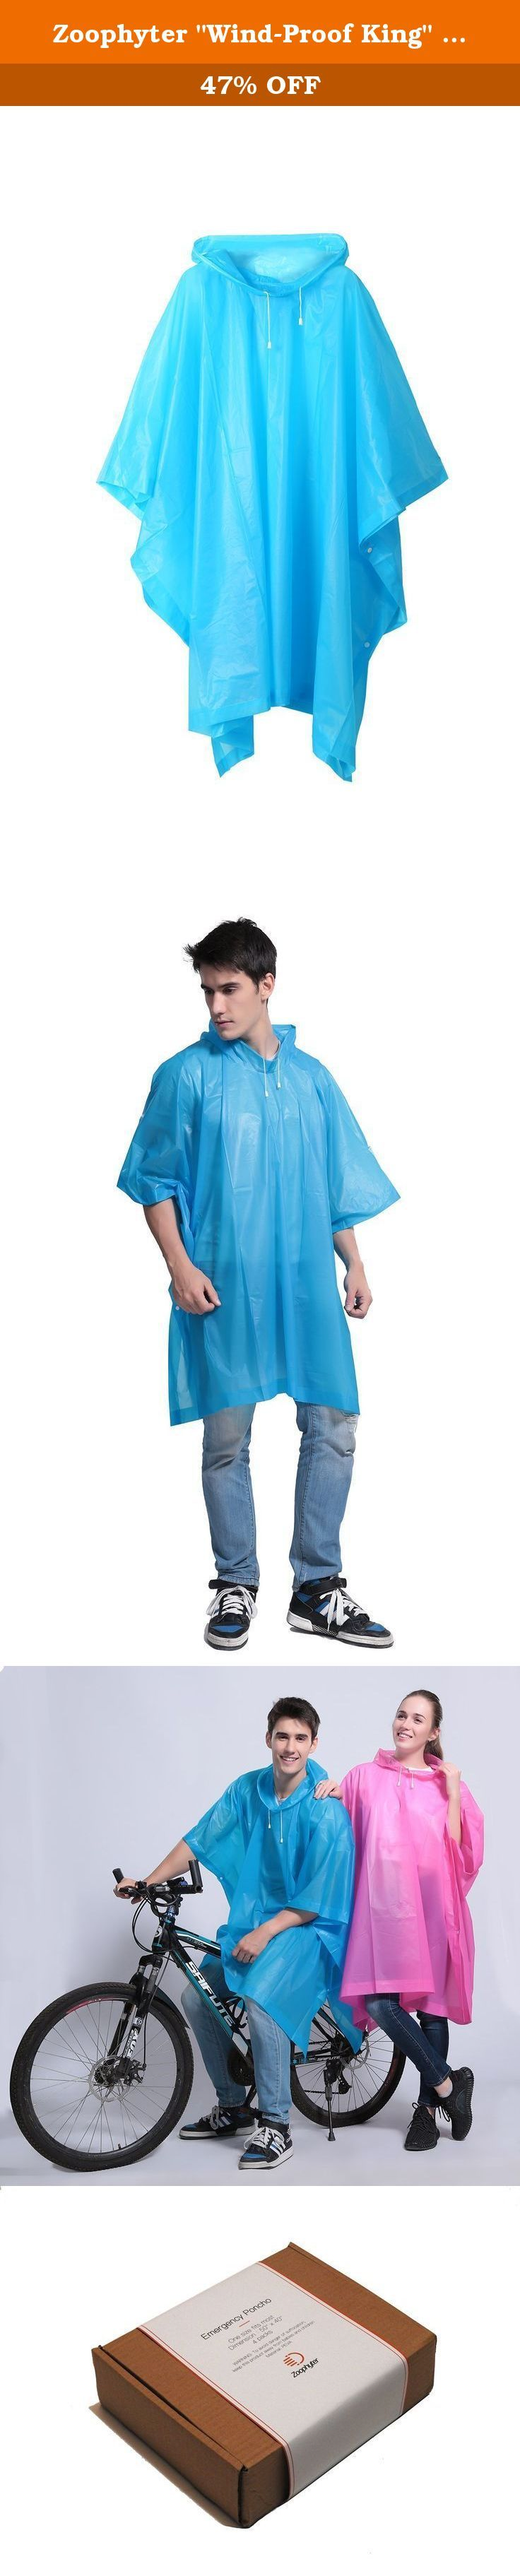 "Zoophyter ""Wind-Proof King"" 4pcs Assorted Adult Emergency Disposable Rain Poncho. Zoophyter rain-proof king poncho This poncho provides maximum coverage when you need it most. The lightweight PEVA fabric makes it easy to slip on and side snaps keep it securely in place. A pull over hood protects your head from unwanted rain drops. Each poncho comes with its own mesh carry case. One size fits most. About The Product Product Size: 50 X 40 inches Package Size: 10 x 8 X 3 inches Package…"